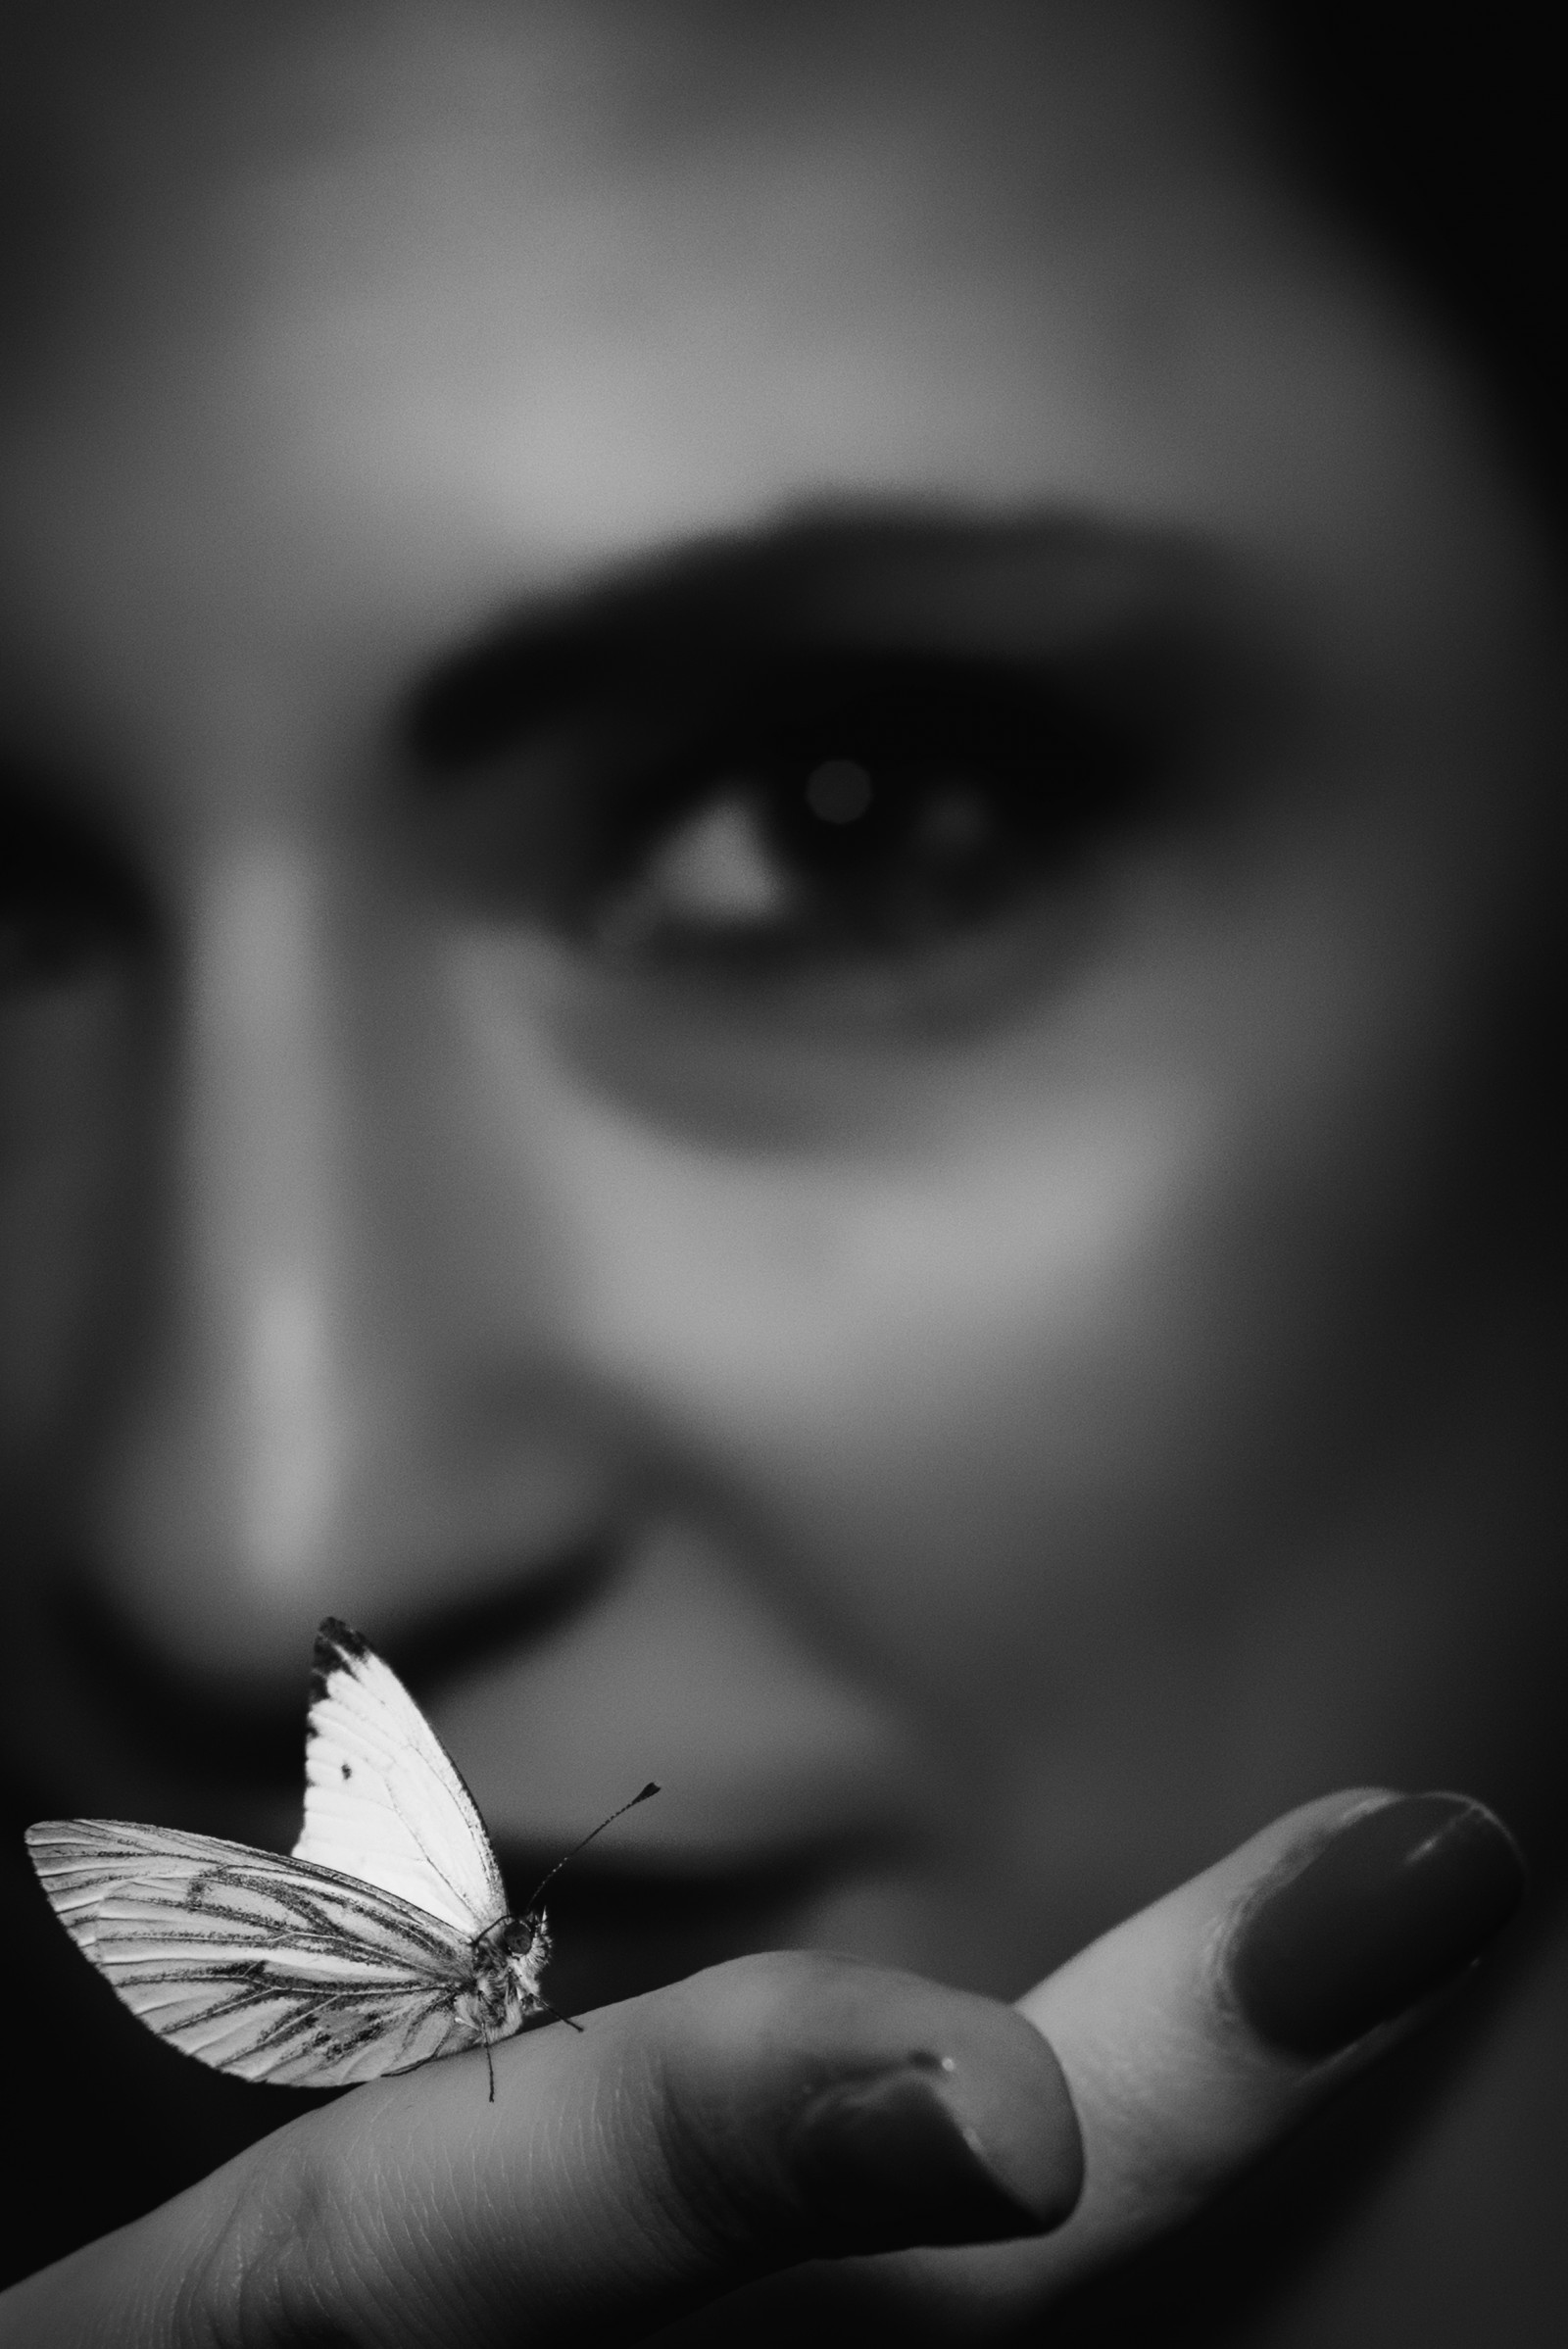 lya-with-butterfly-depth-of-field-photography